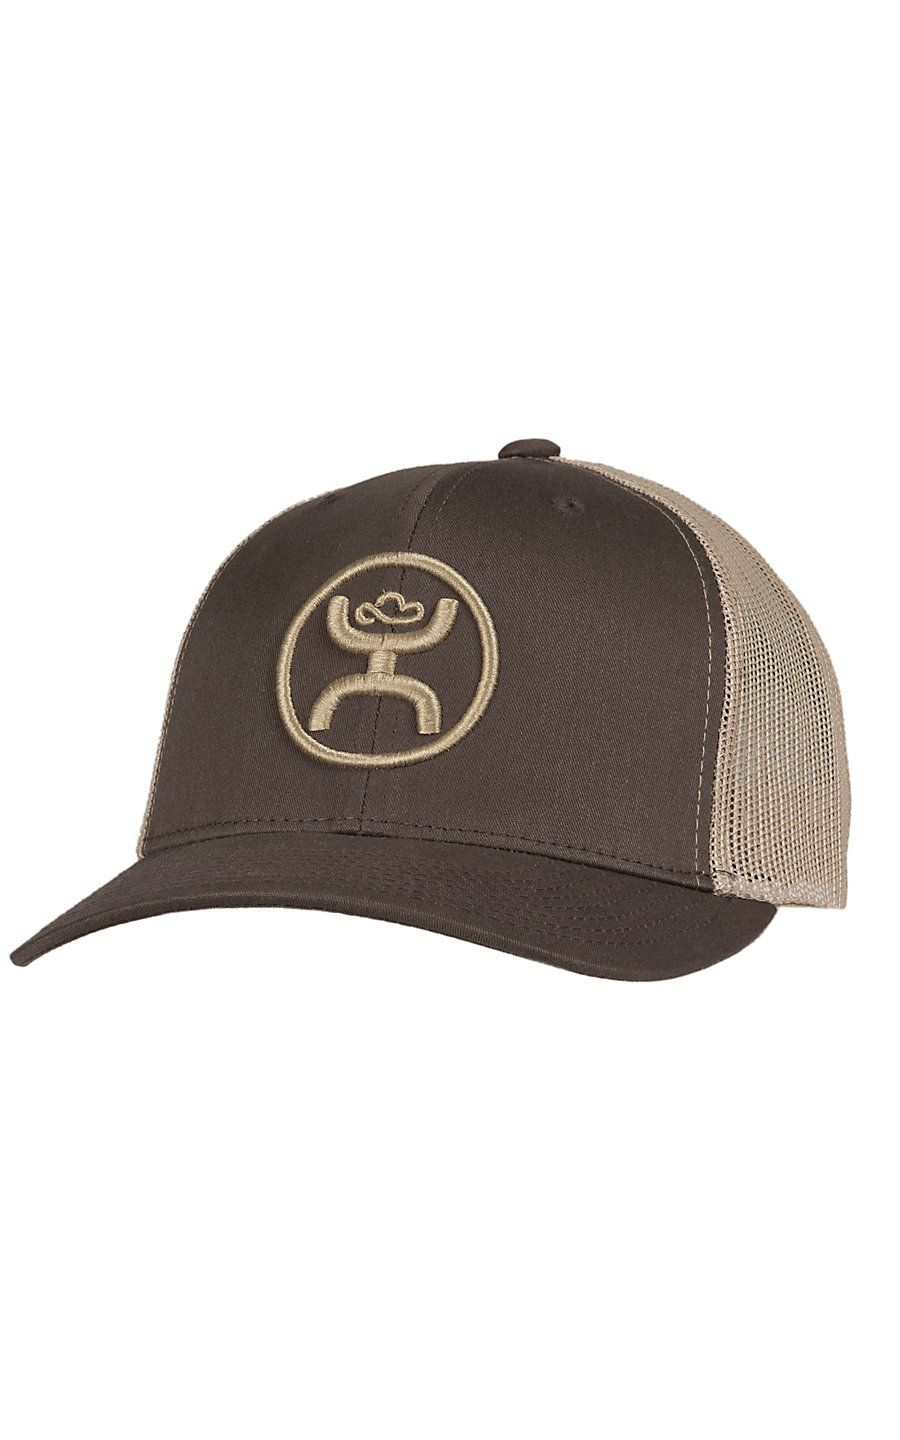 bb0e01a0ded HOOey Men s Cody Ohl Brown with Tan Logo   Mesh Back Cap